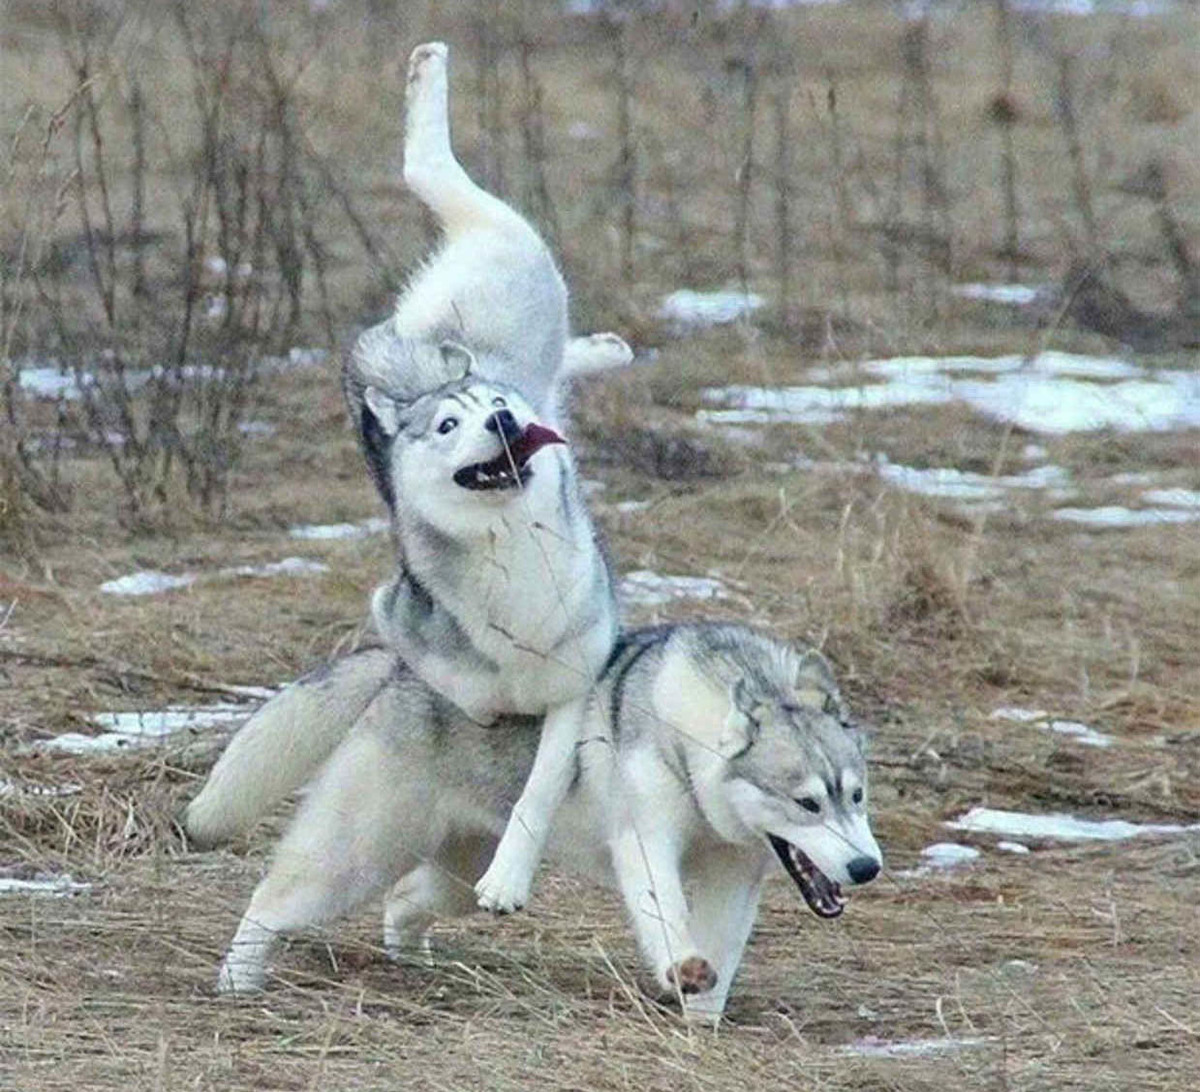 dogs tripping over each other in the woods